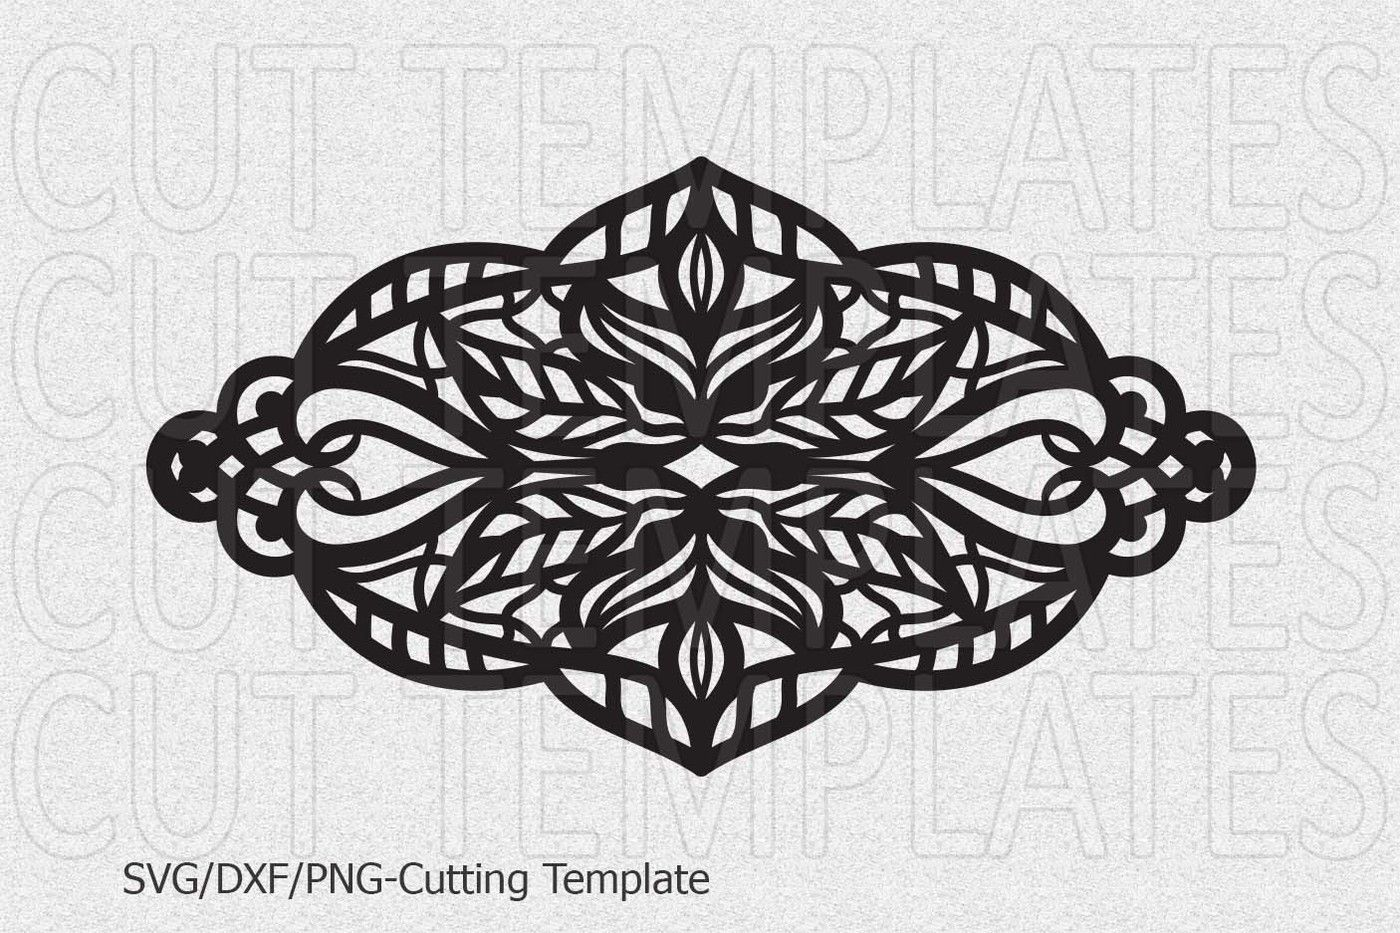 Cuff Bracelet Leather Jewelry Templates Lace Floral Svg Dxf Png